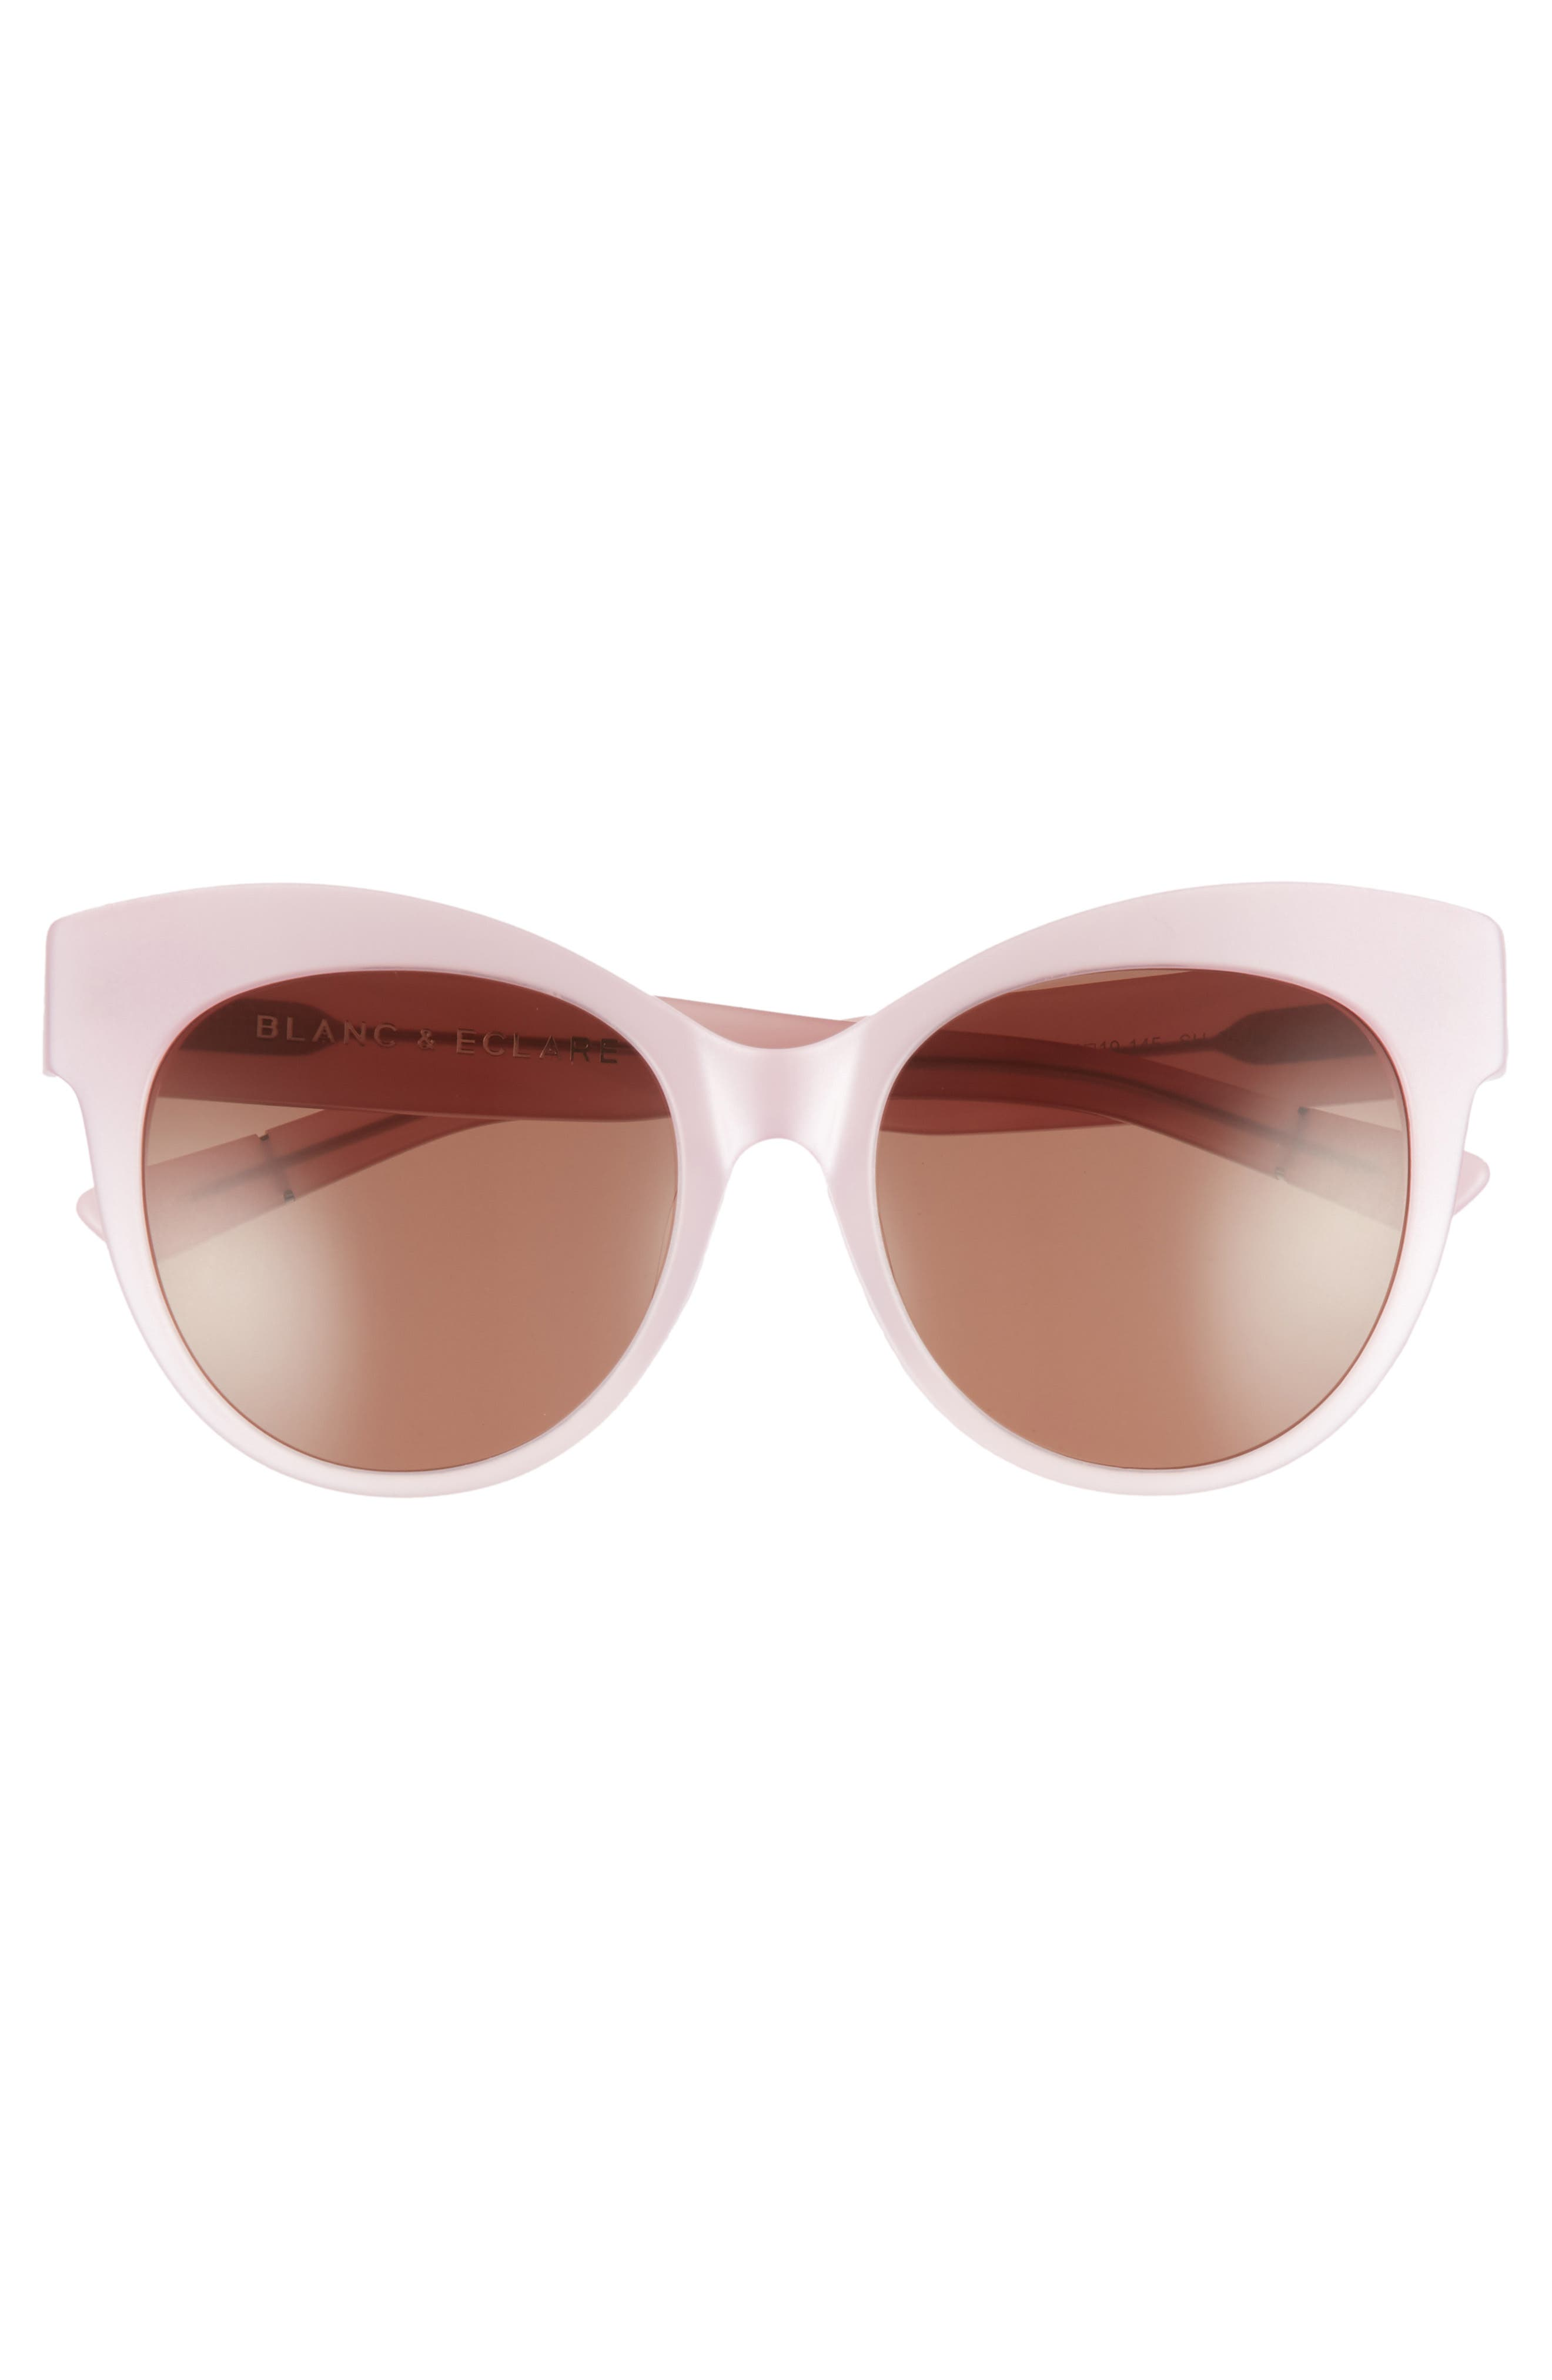 BLANC & ECLARE Paris 55mm Polarized Cat Eye Sunglasses,                             Alternate thumbnail 3, color,                             Blush